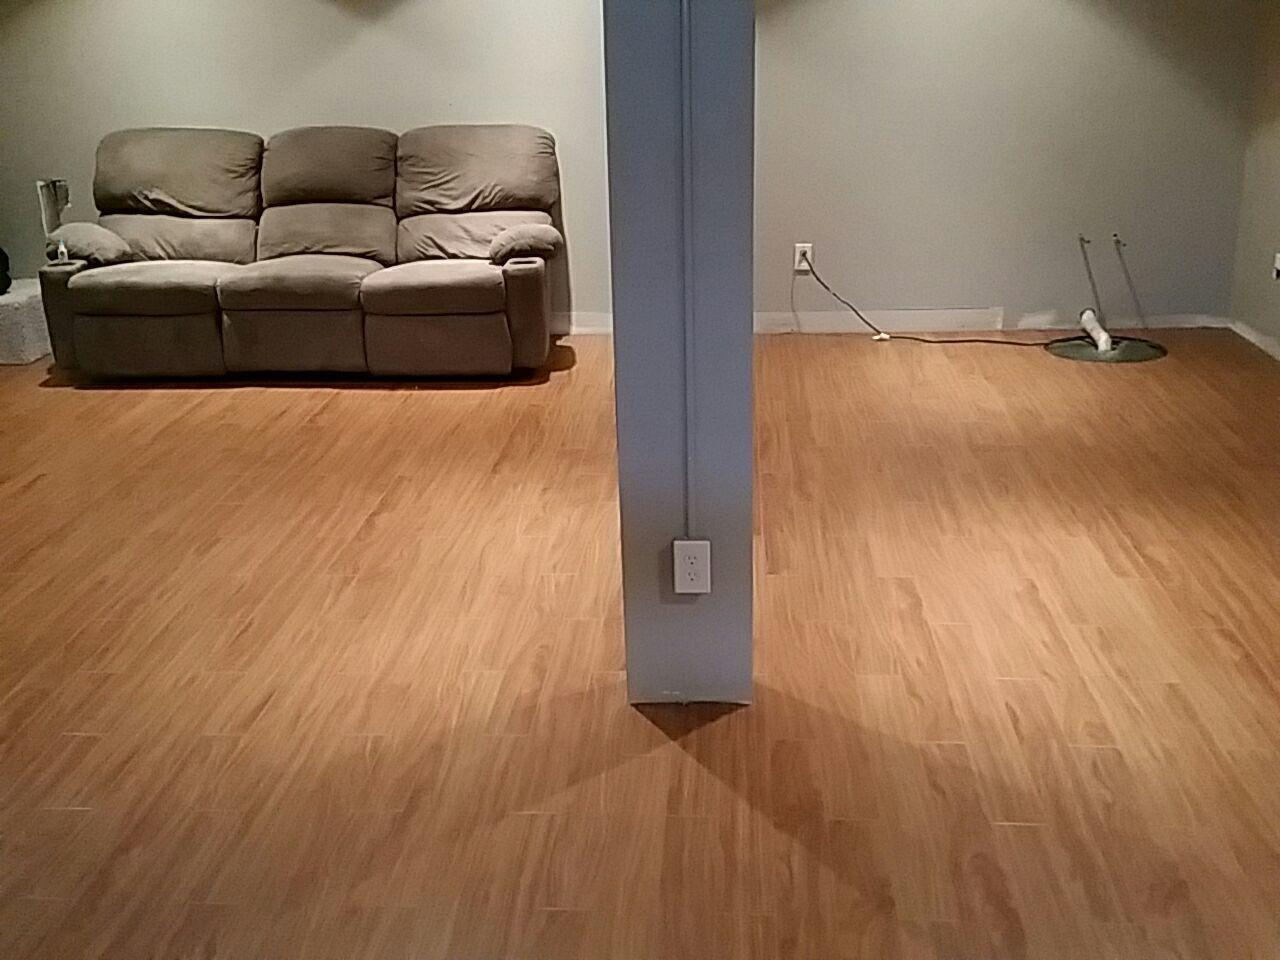 ThermalDry flooring is available in two different finishes, Light Pecan, and Dark Walnut.